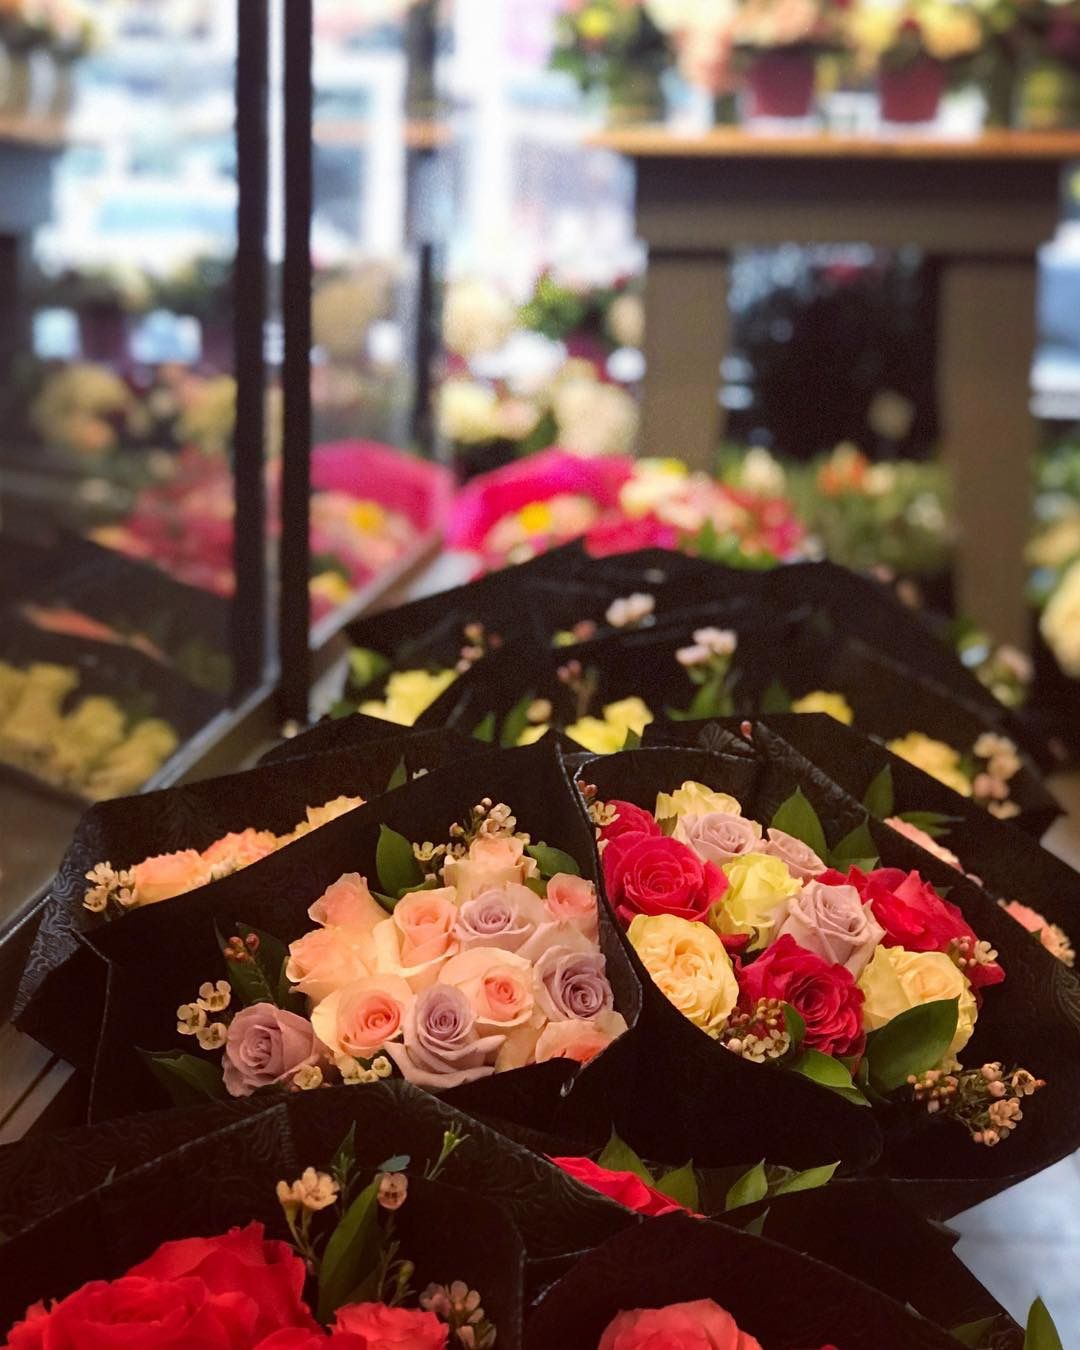 Hip Trendy Our Oakville Flower Store Has The Best Flowers And Roses For Valentine S Day And Is Always Full Of Little Gif Flower Store Amazing Flowers Flowers